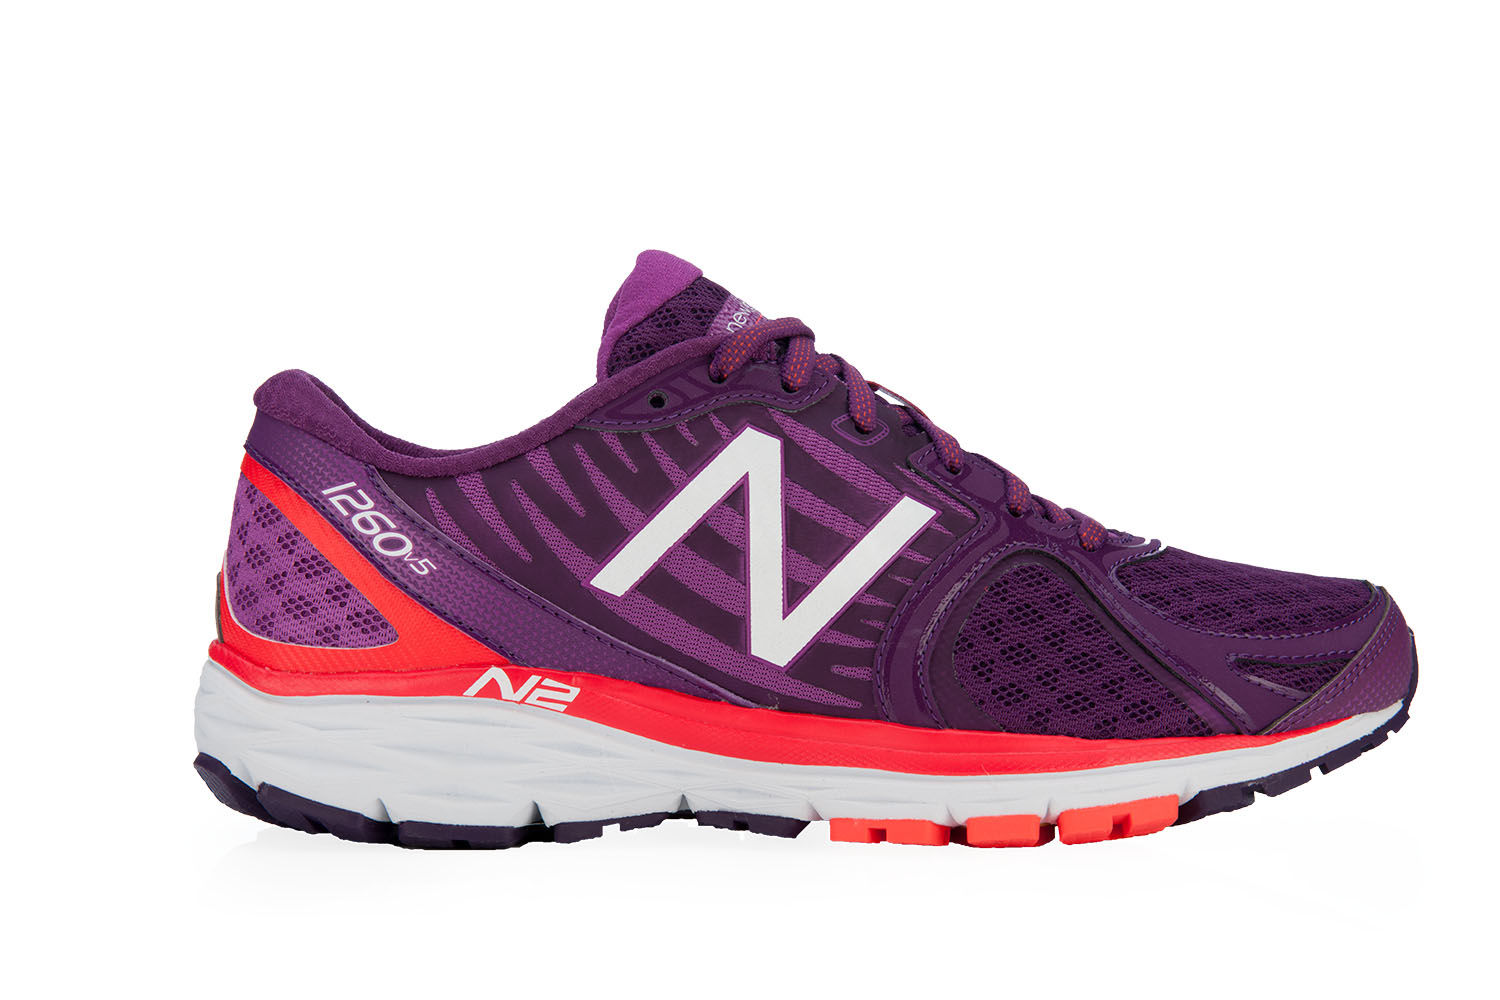 New Balance Lady 1260 V5 in Purple/Orange